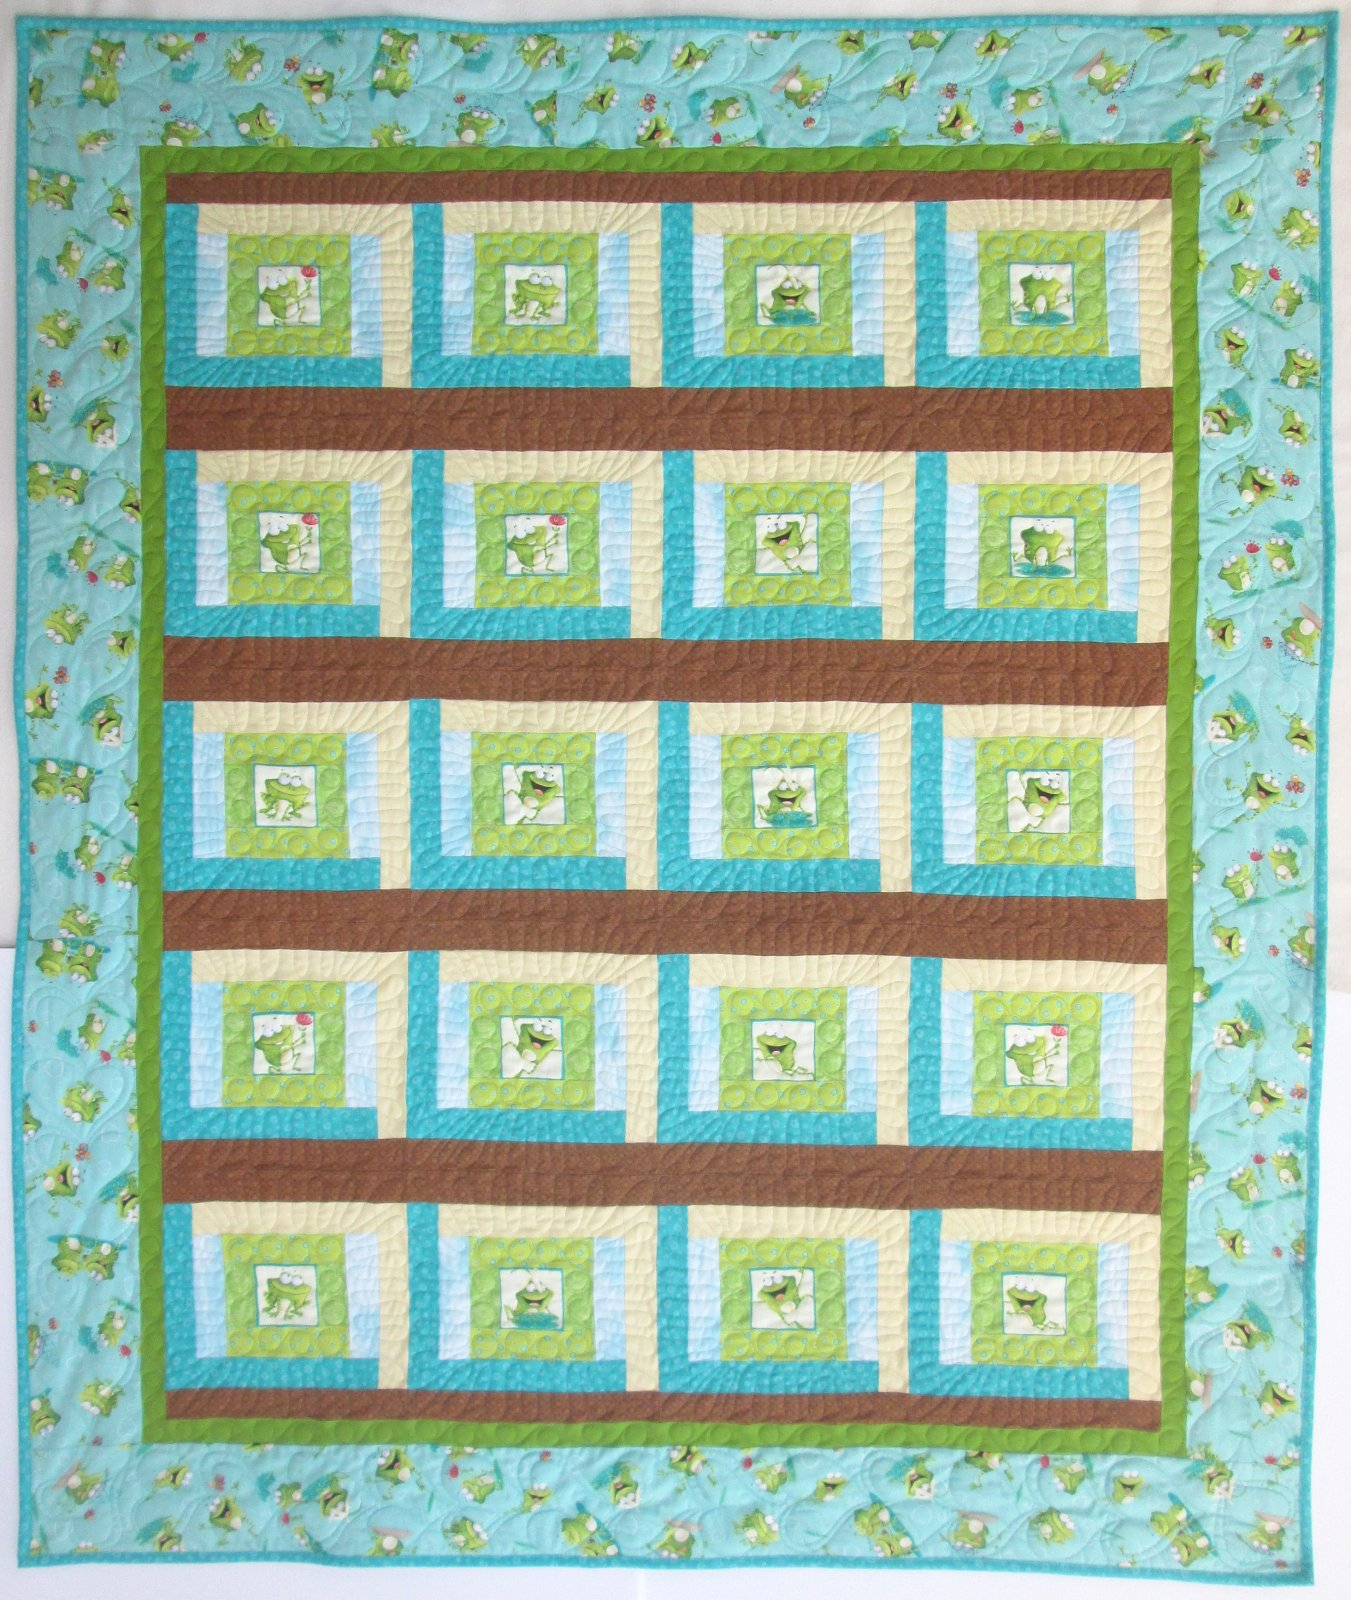 Frogland Friends Courthouse Steps Quilt Kit 51 x 61